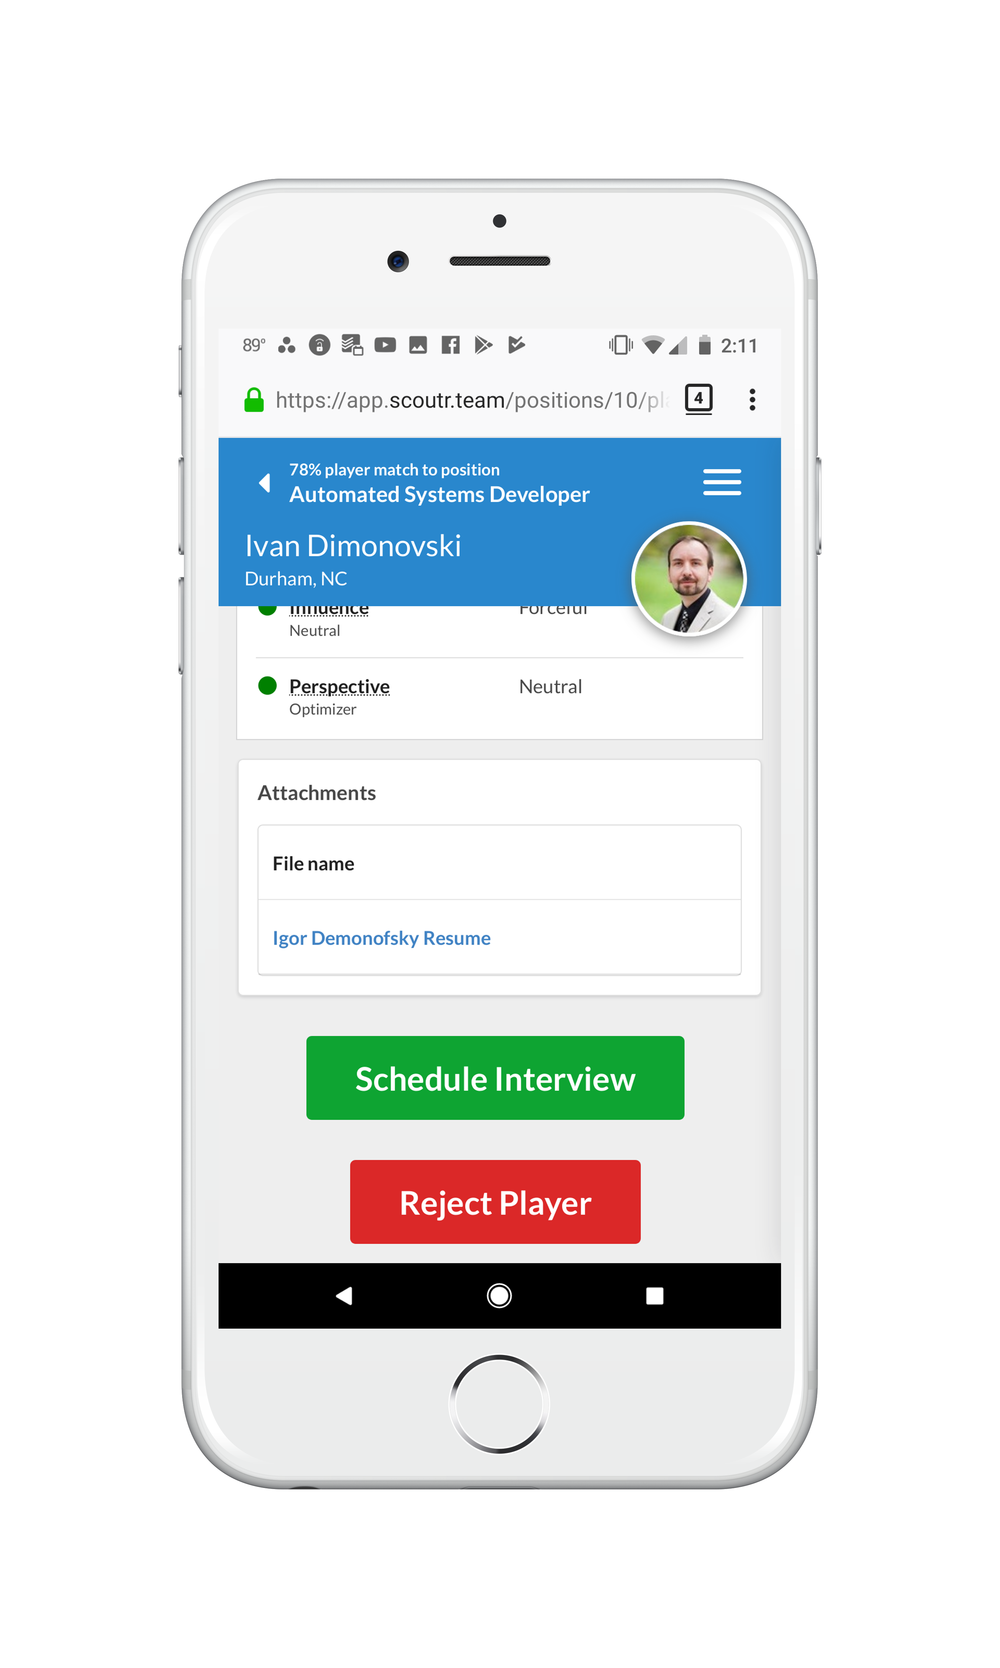 Anytime, Anywhere Access - Review candidates, schedule interviews, and provide feedback right from any browser on their mobile-devices.